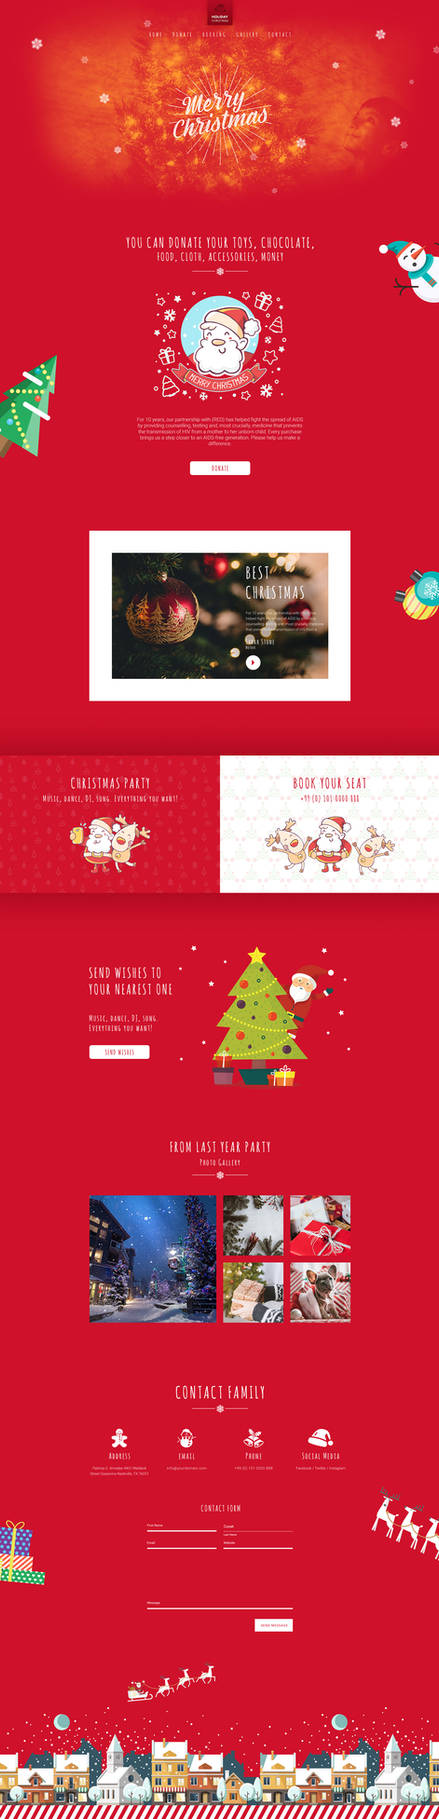 Free Holiday Template by artbees